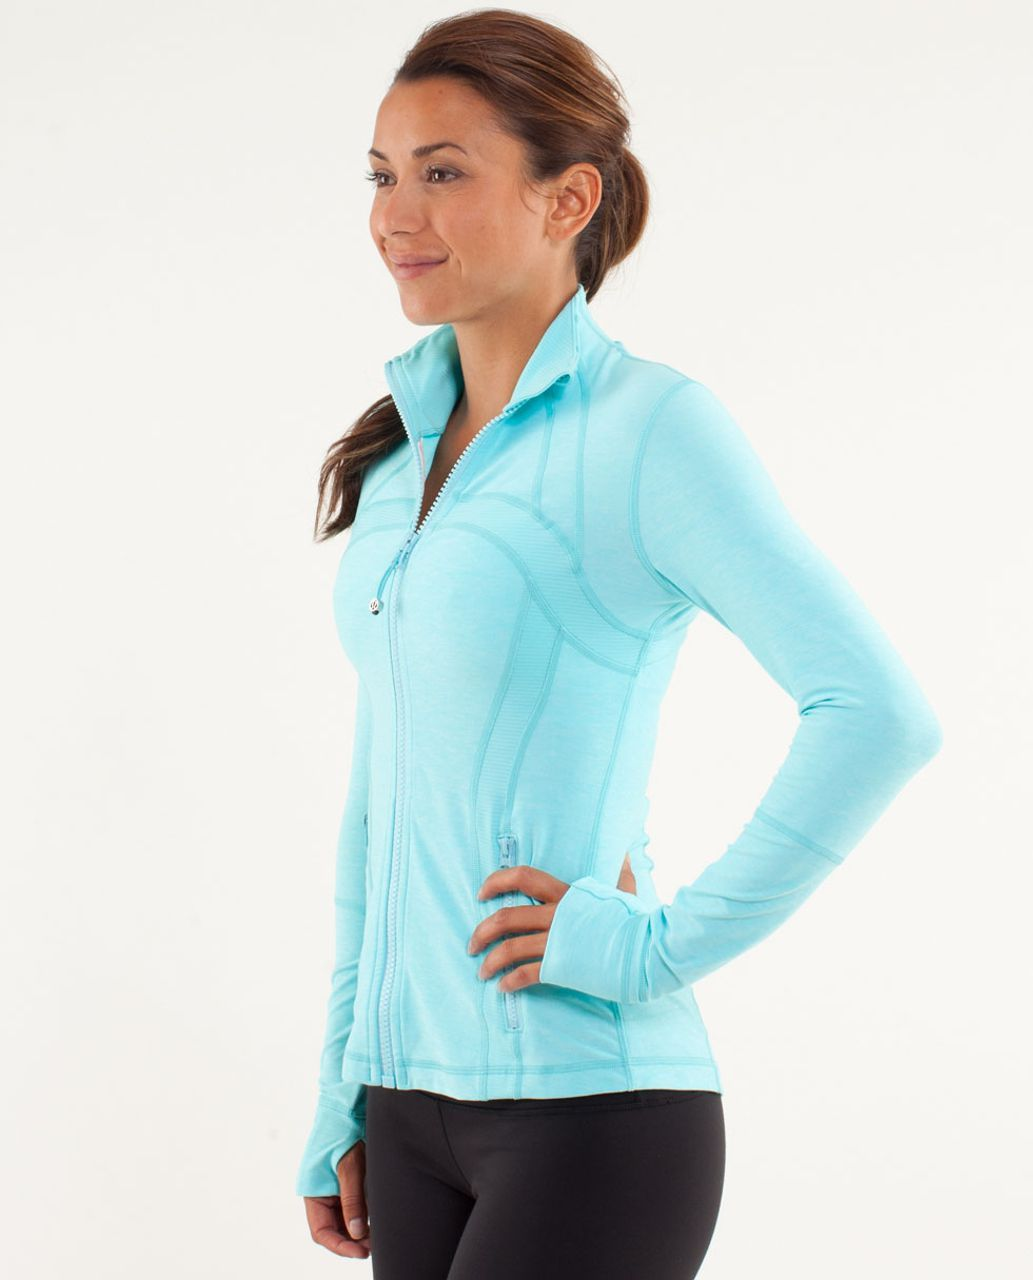 a800b1b325aad Lululemon Define Jacket - Heathered Angel Blue   Tonka Stripe Angel Blue    Heathered Angel Blue